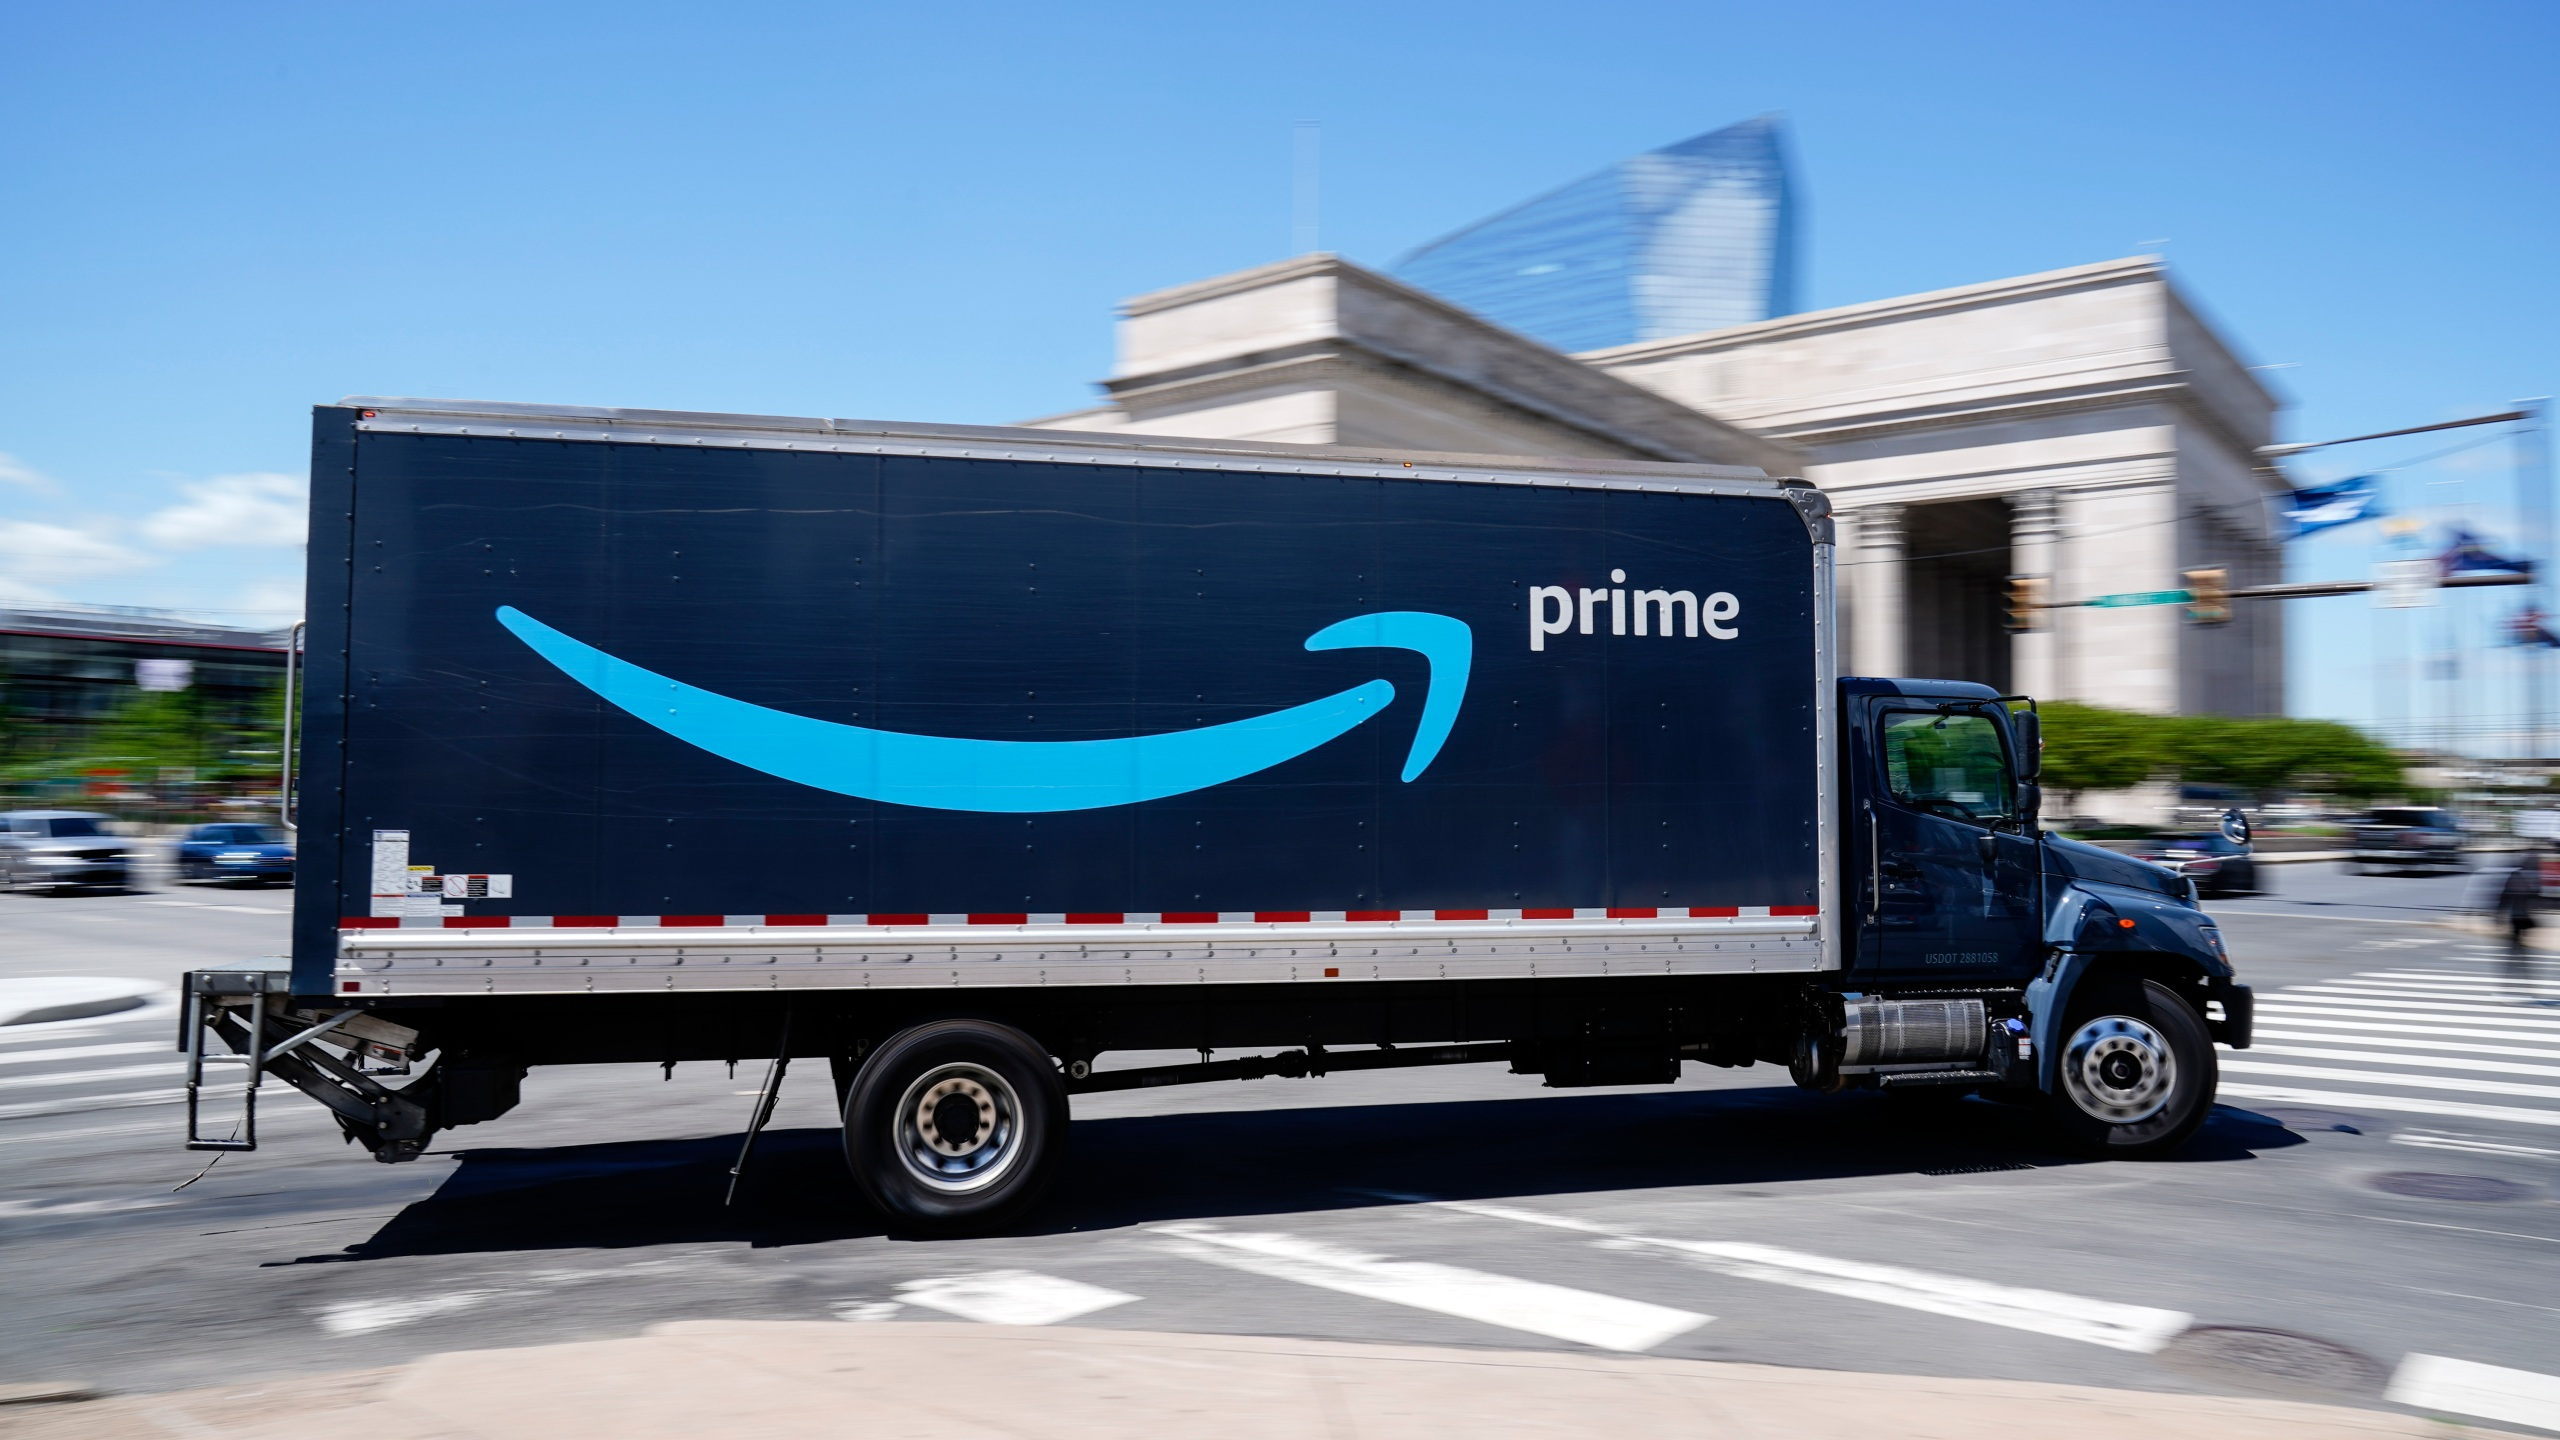 An Amazon truck drives in in Philadelphia, Friday, April 30, 2021. Amazon is seeking to hire 75,000 people in a tight job market and is offering bonuses to attract workers, including $100 for new hires who are already vaccinated for COVID-19. (AP Photo/Matt Rourke)